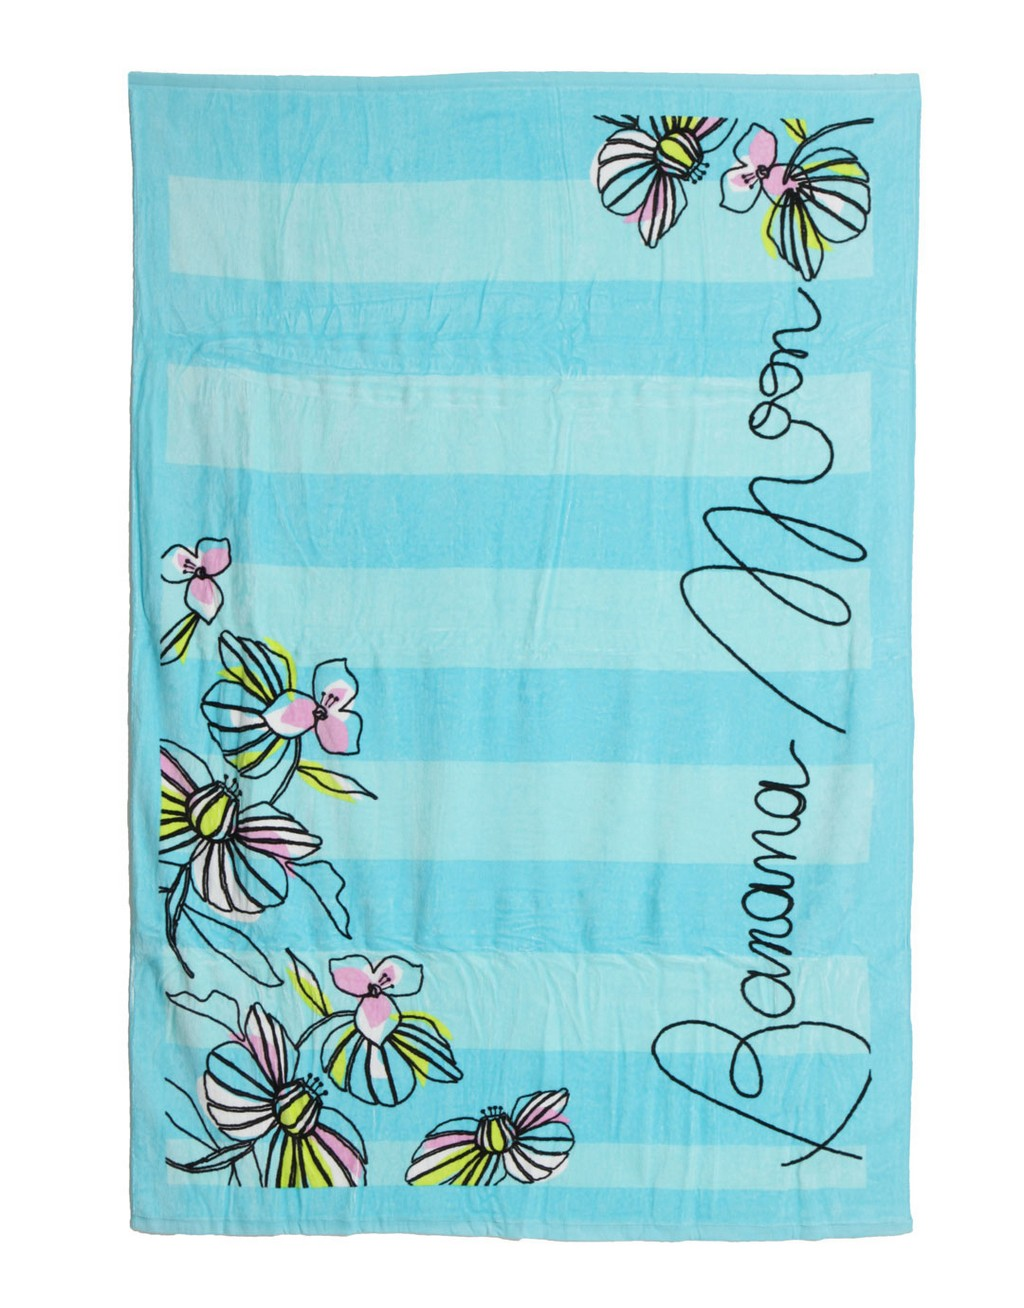 pocketed beach towels, flour sack towels, black and white cow kitchen towels, turquoise towels